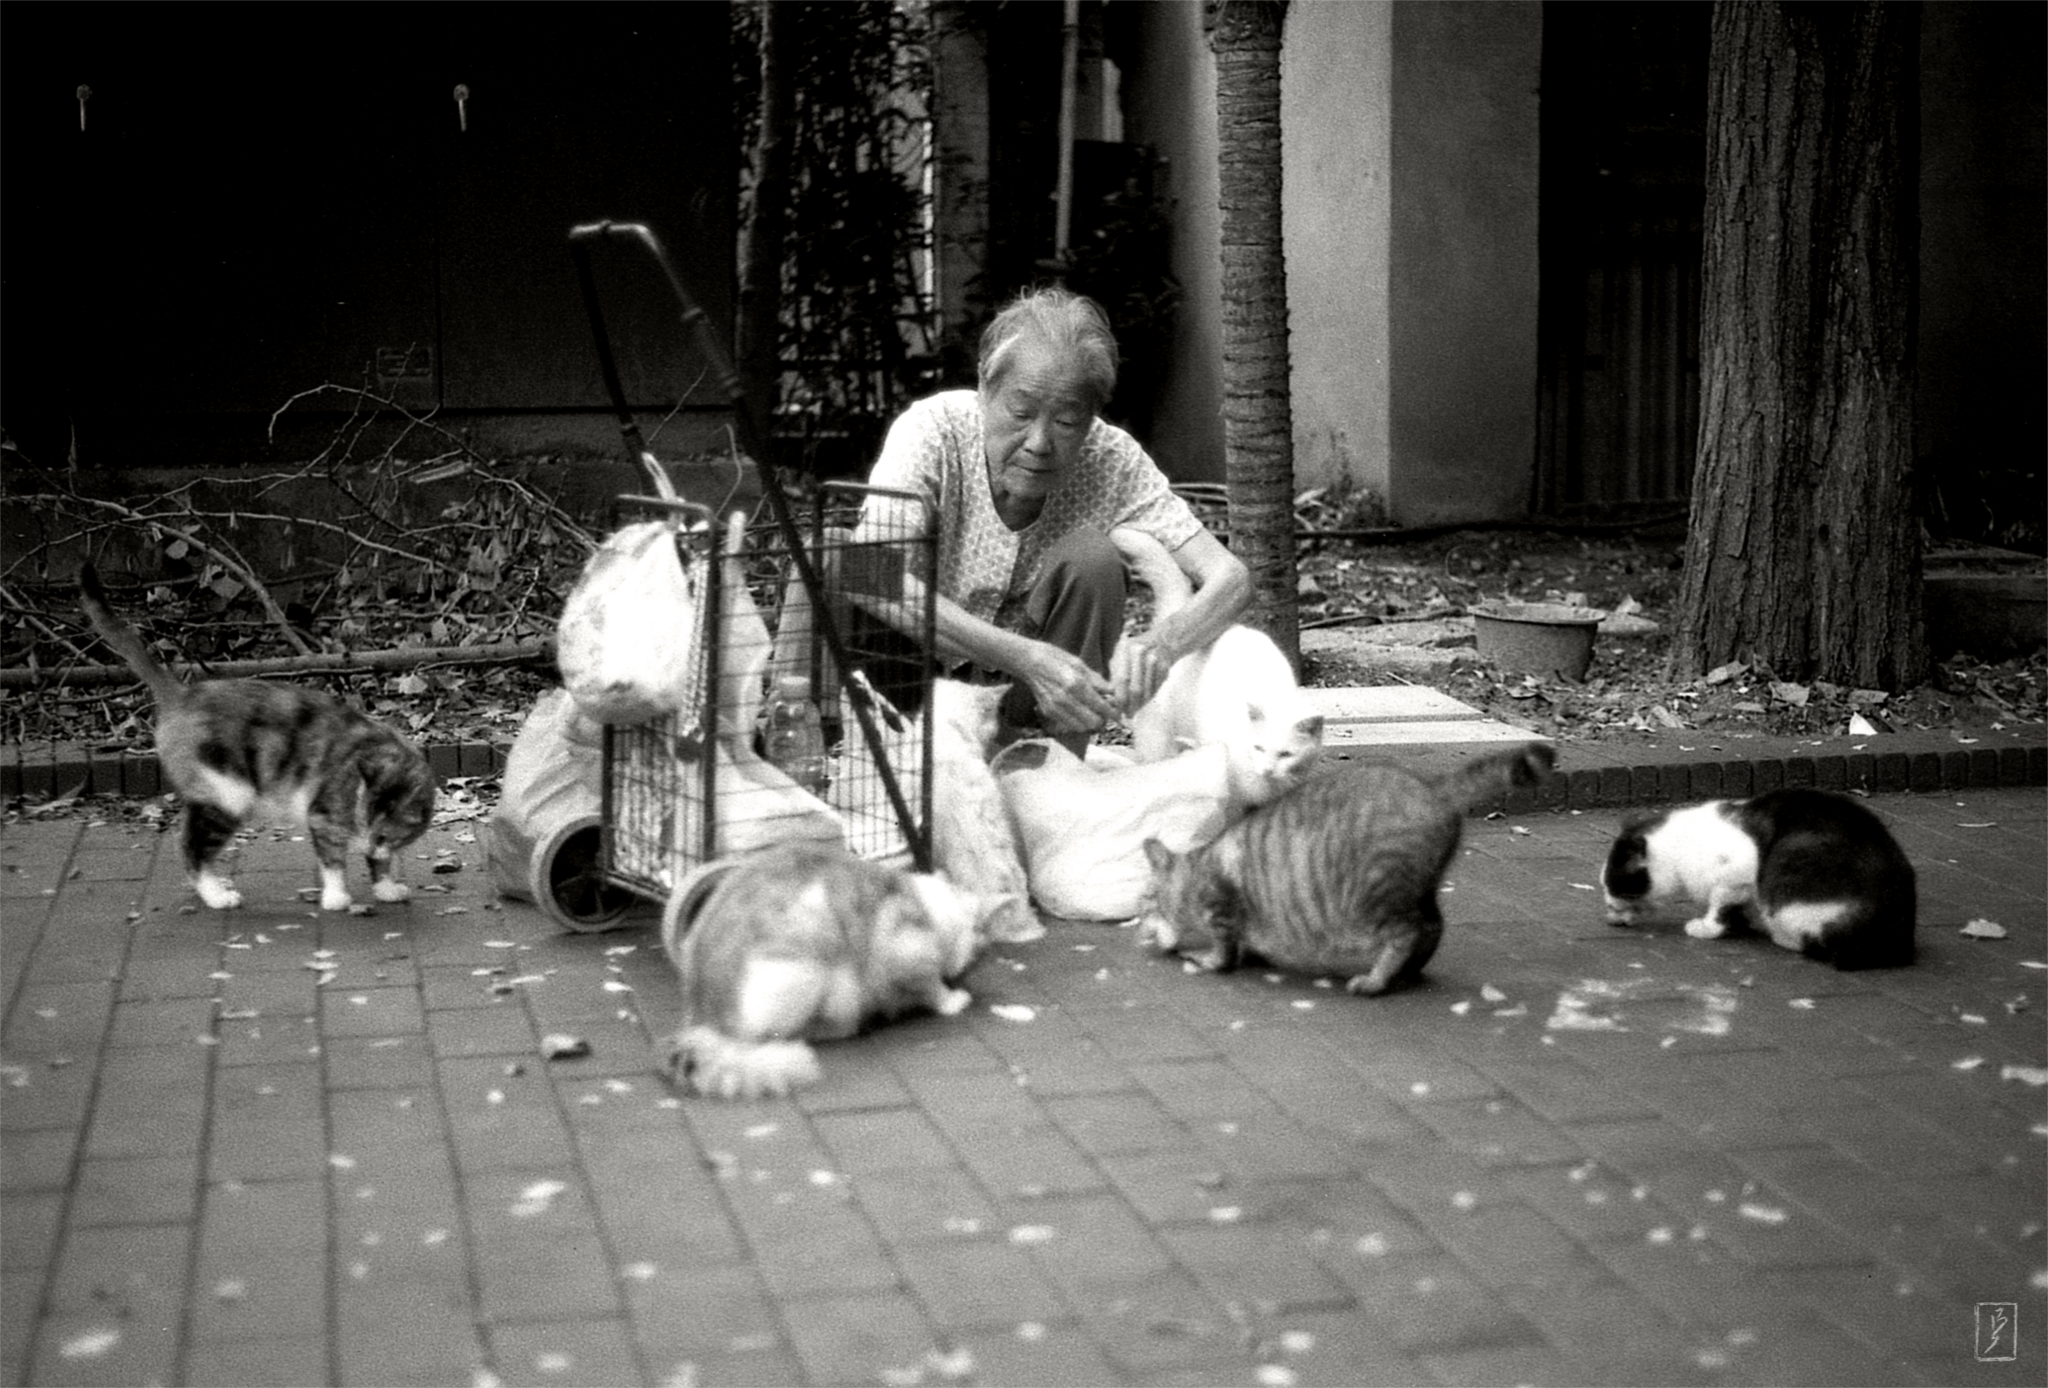 Zhongshan park (中山公园): An old woman with the group of cats she regularly feeds.